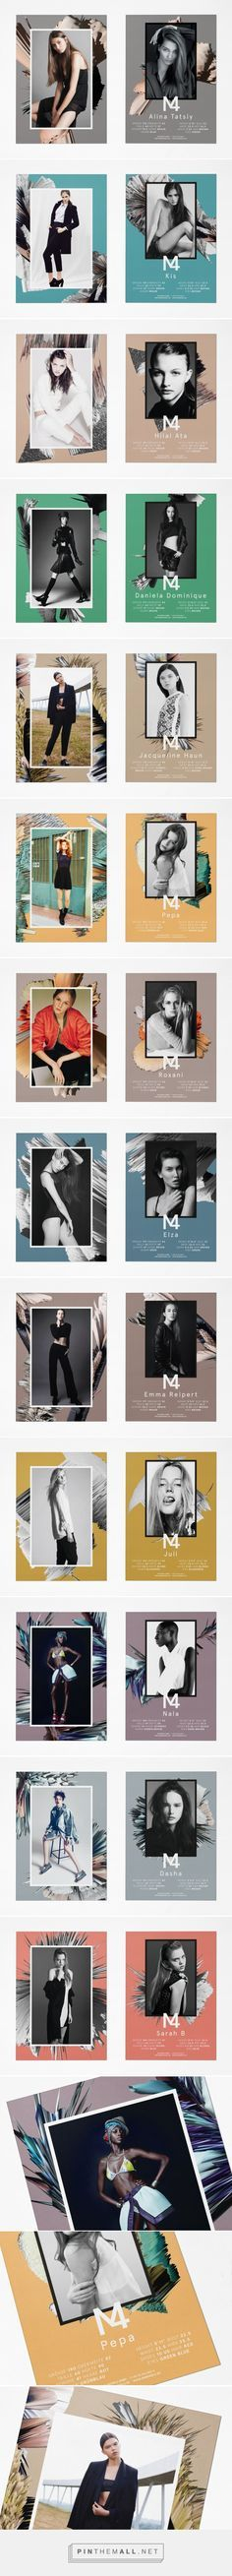 M4 Models SedCards Winter 2015 | Eps51 graphic design studio... - a grouped images picture - Pin Them All